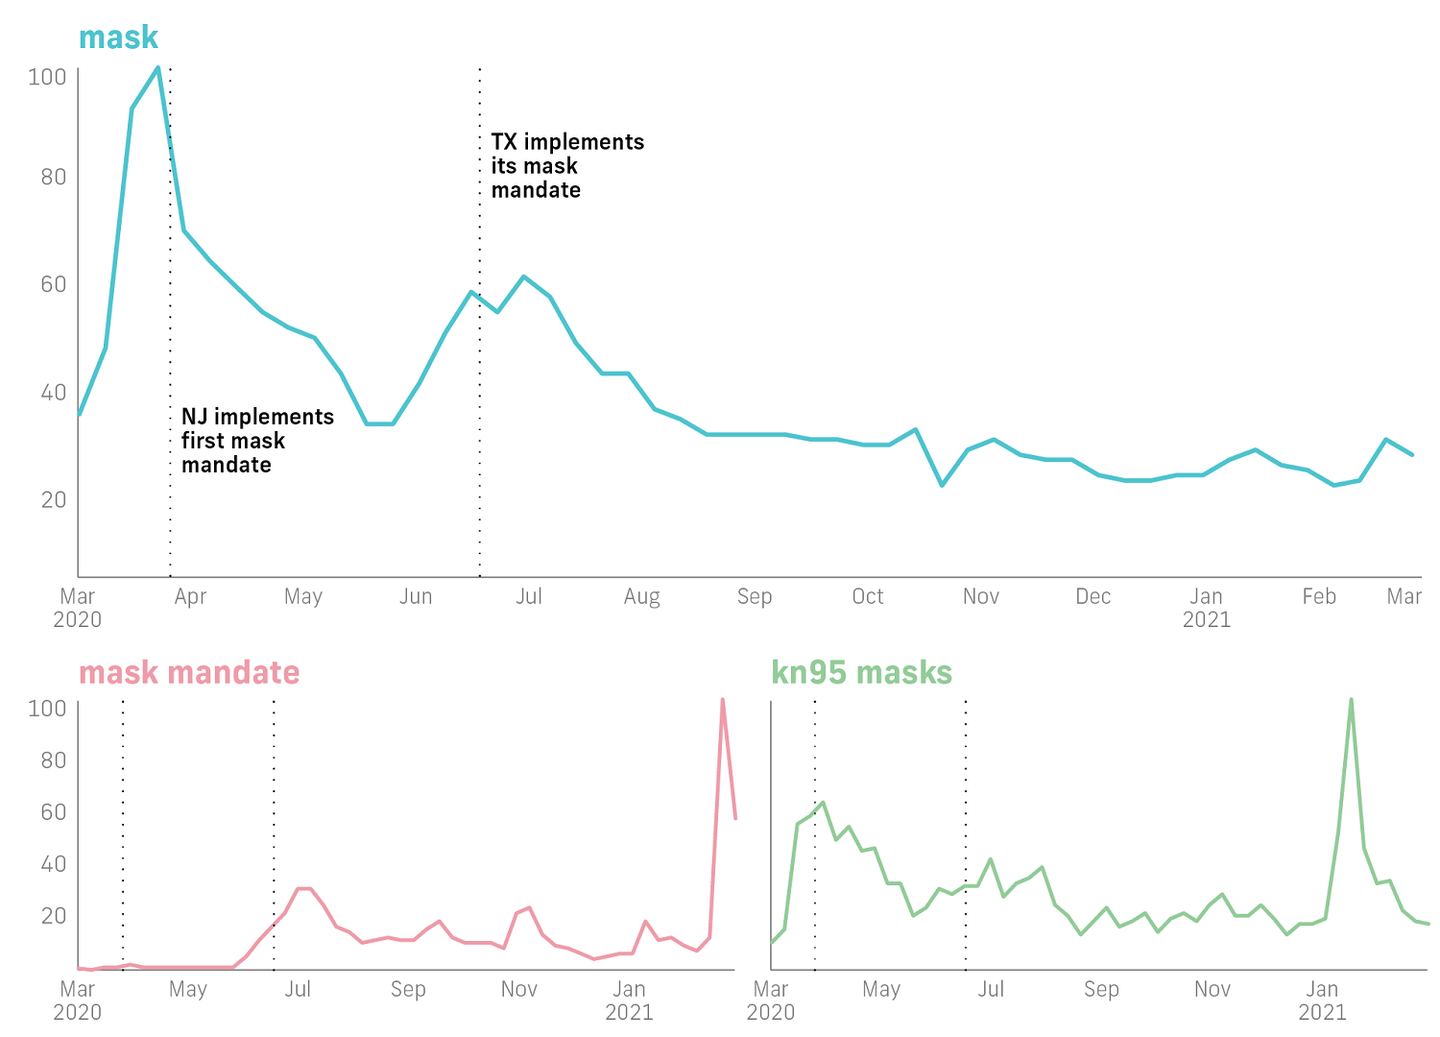 Line graphs in blue, pink, and green for mask, mask mandate, and kn95 masks